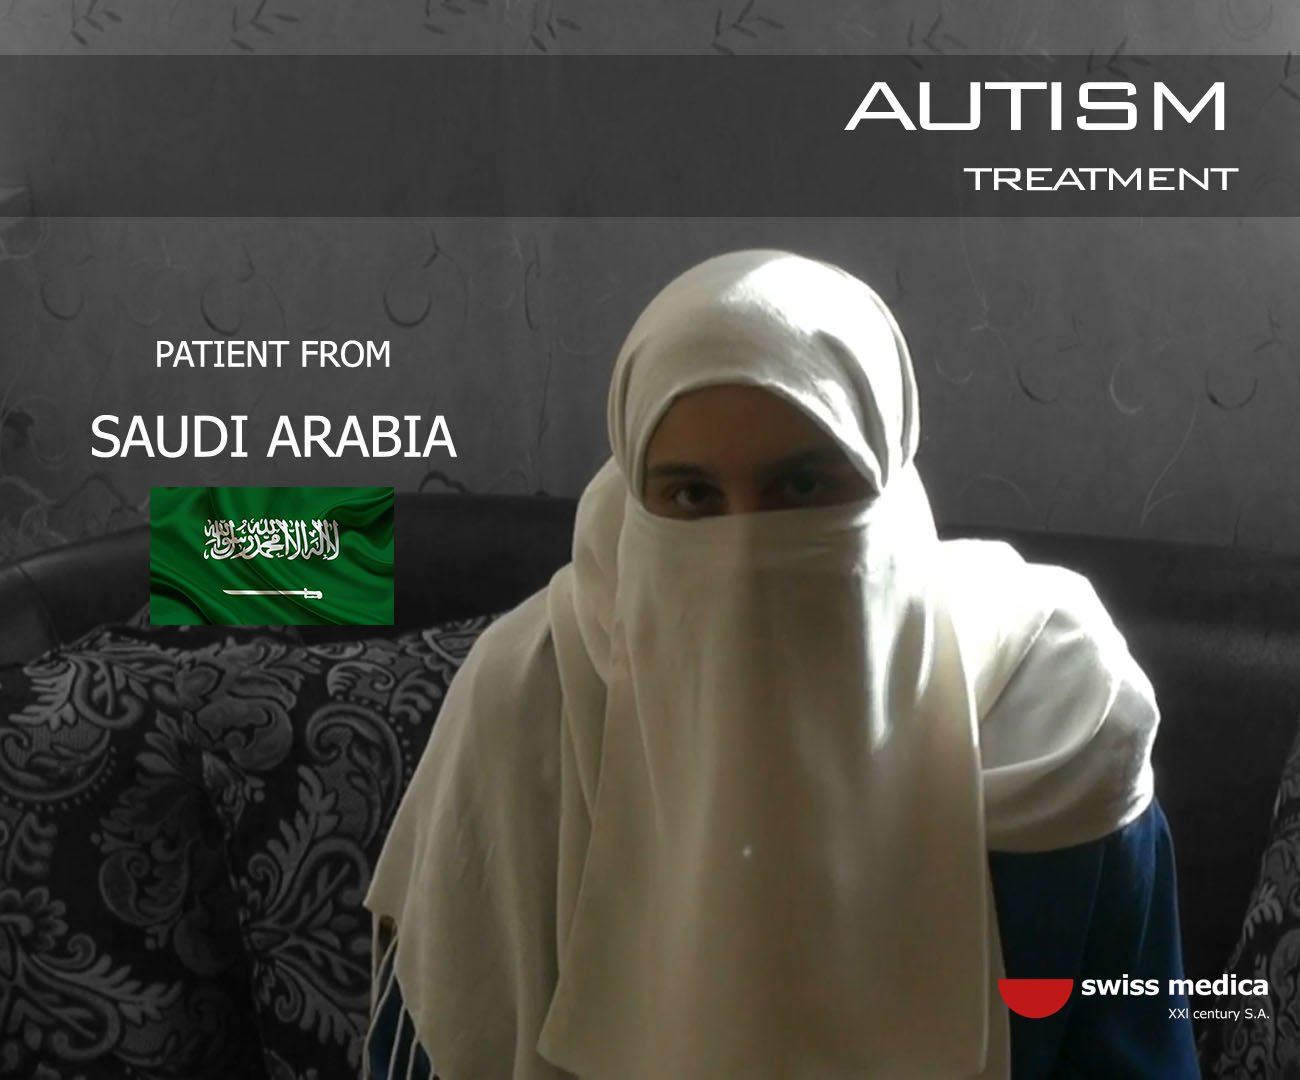 Autism Treatment With Stem Cells How It S Treated